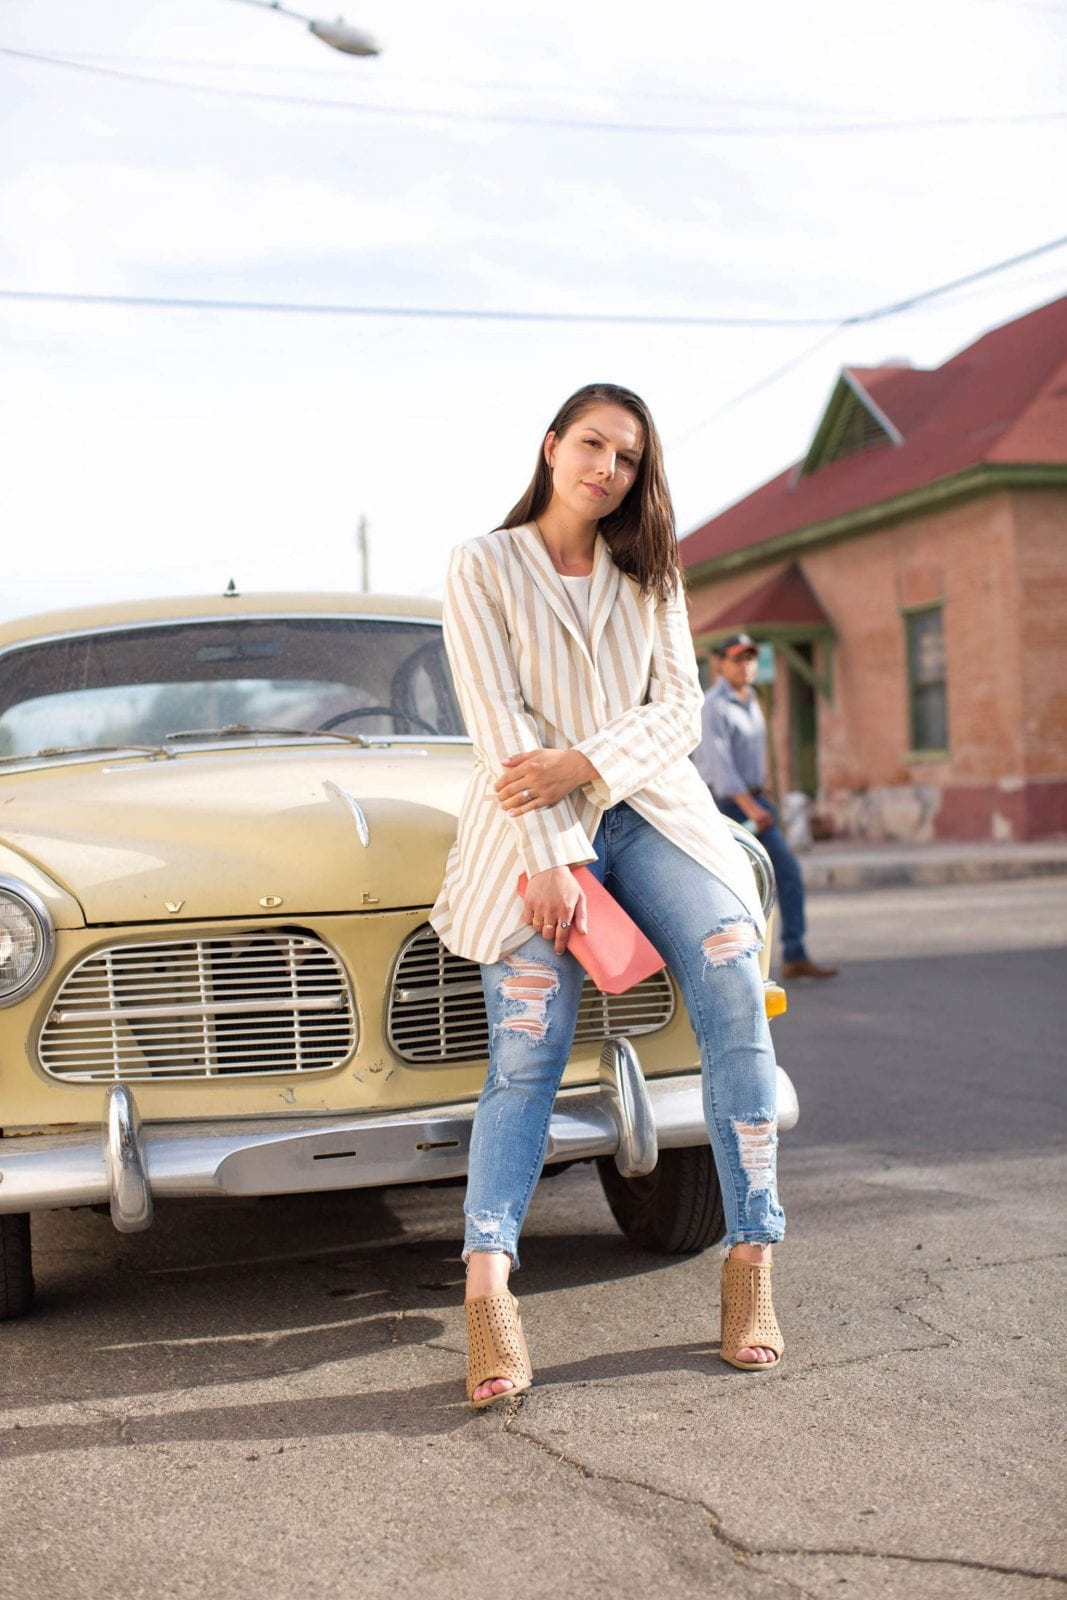 This is a photo of me wearing Chriselle x JOA while sitting on an old school Volvo in Tucson Arizona.